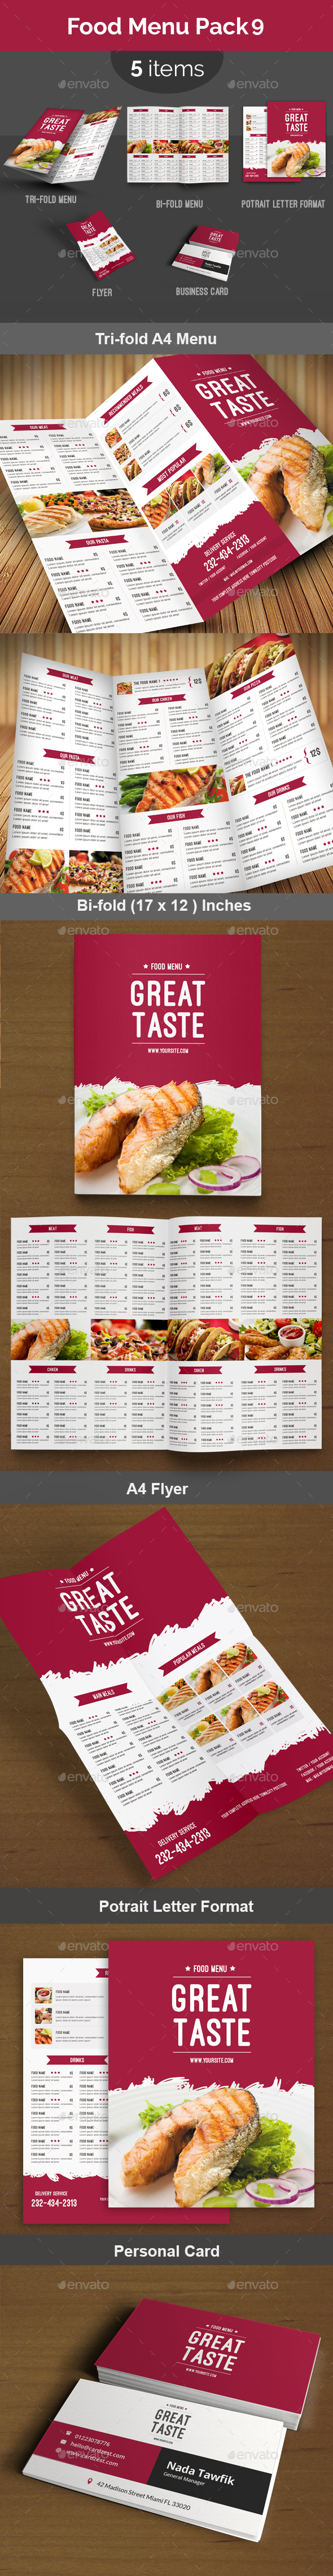 Food Menu Pack 9